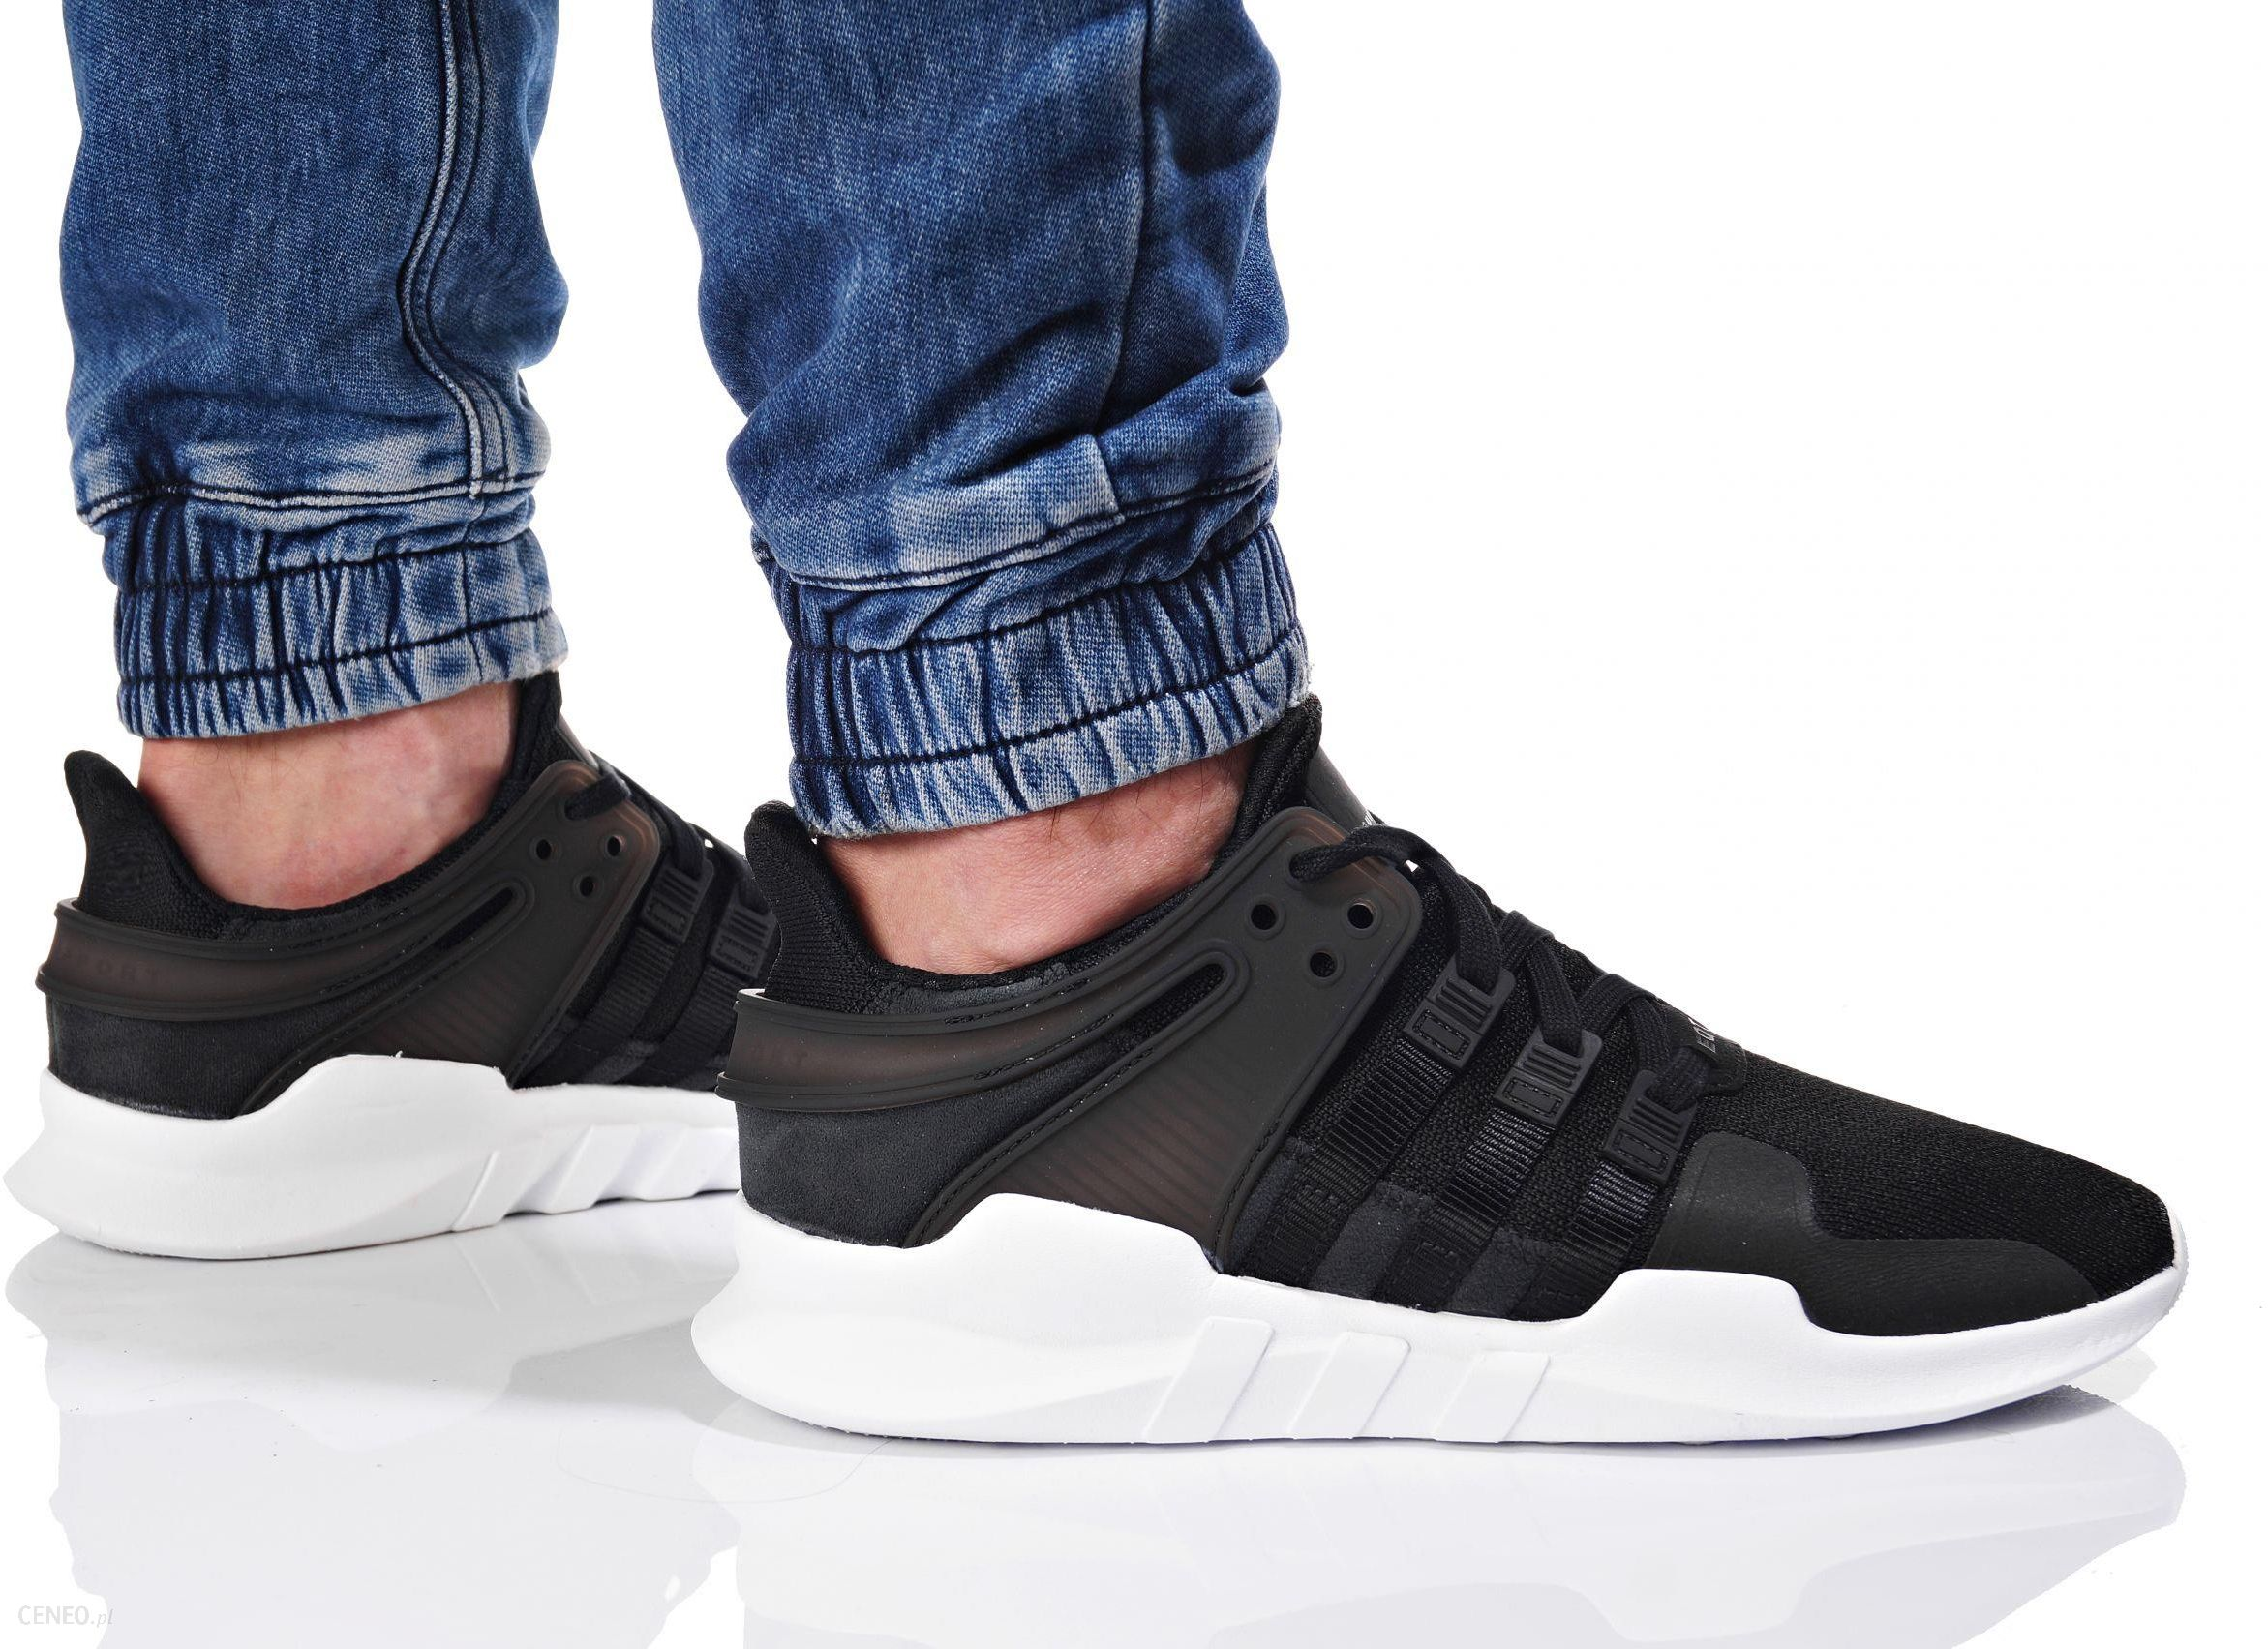 CHAUSSURES ADIDAS EQT SUPPORT ADV CP9557 VkmGxVVt